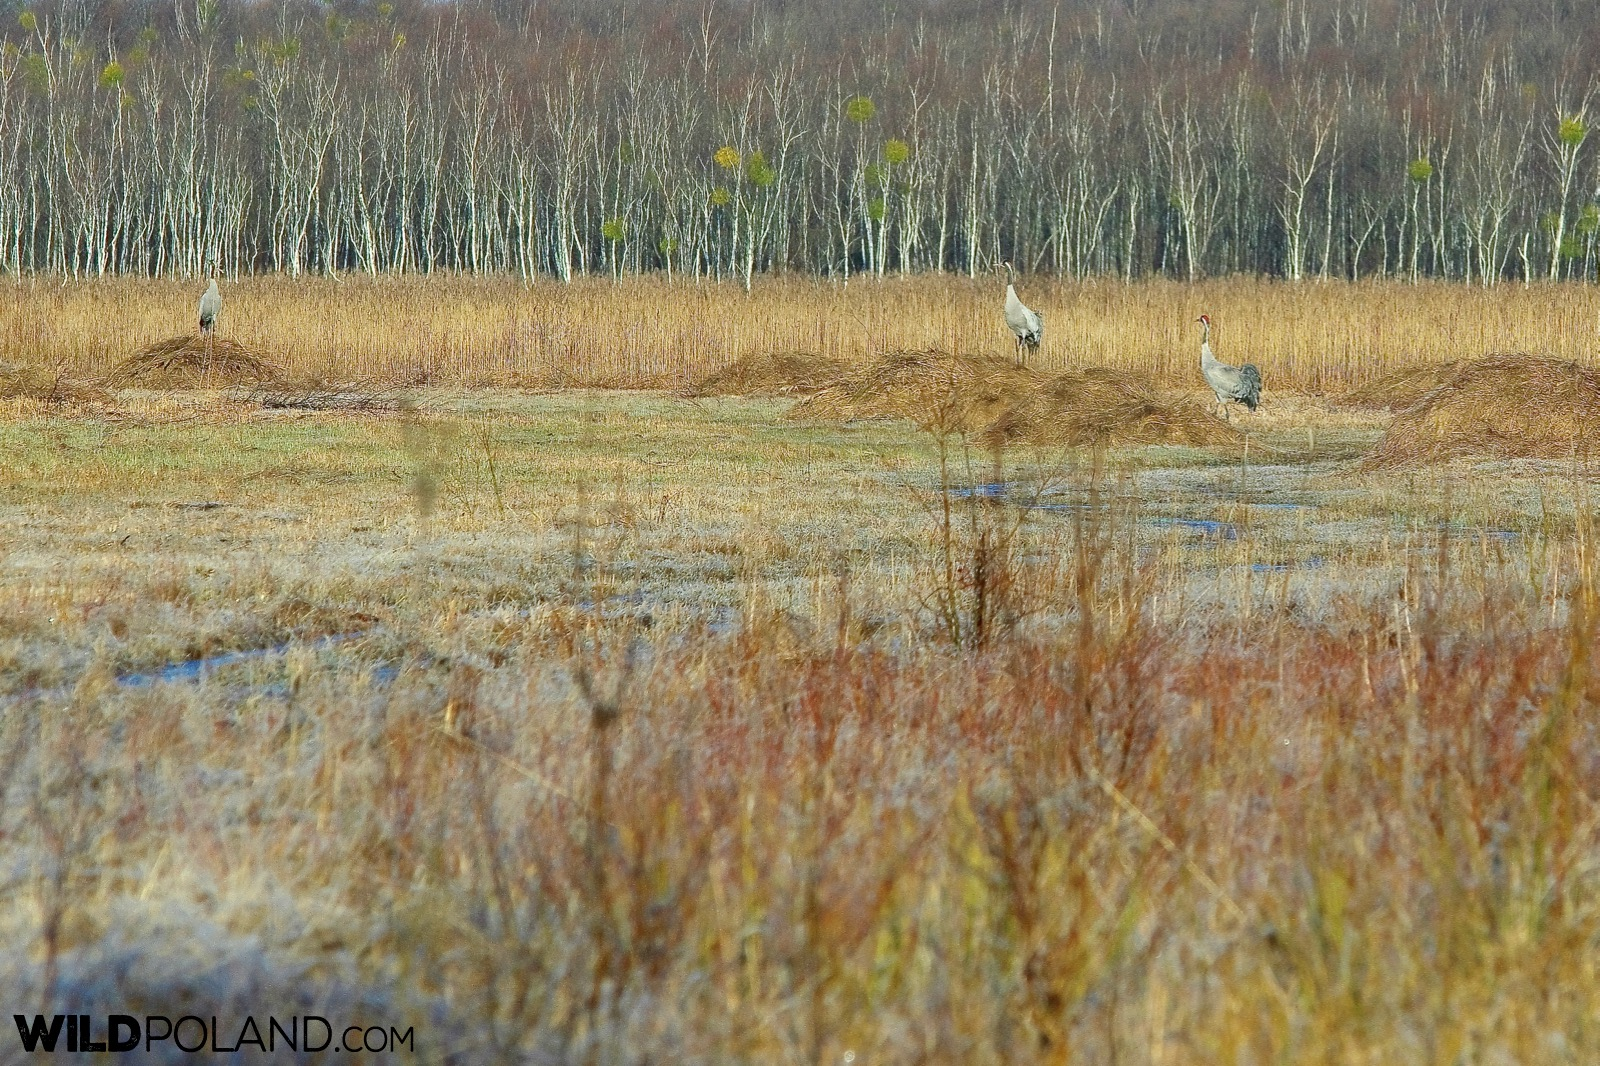 Cranes at the Biebrza Marshes, photo by Andrzej Petryna